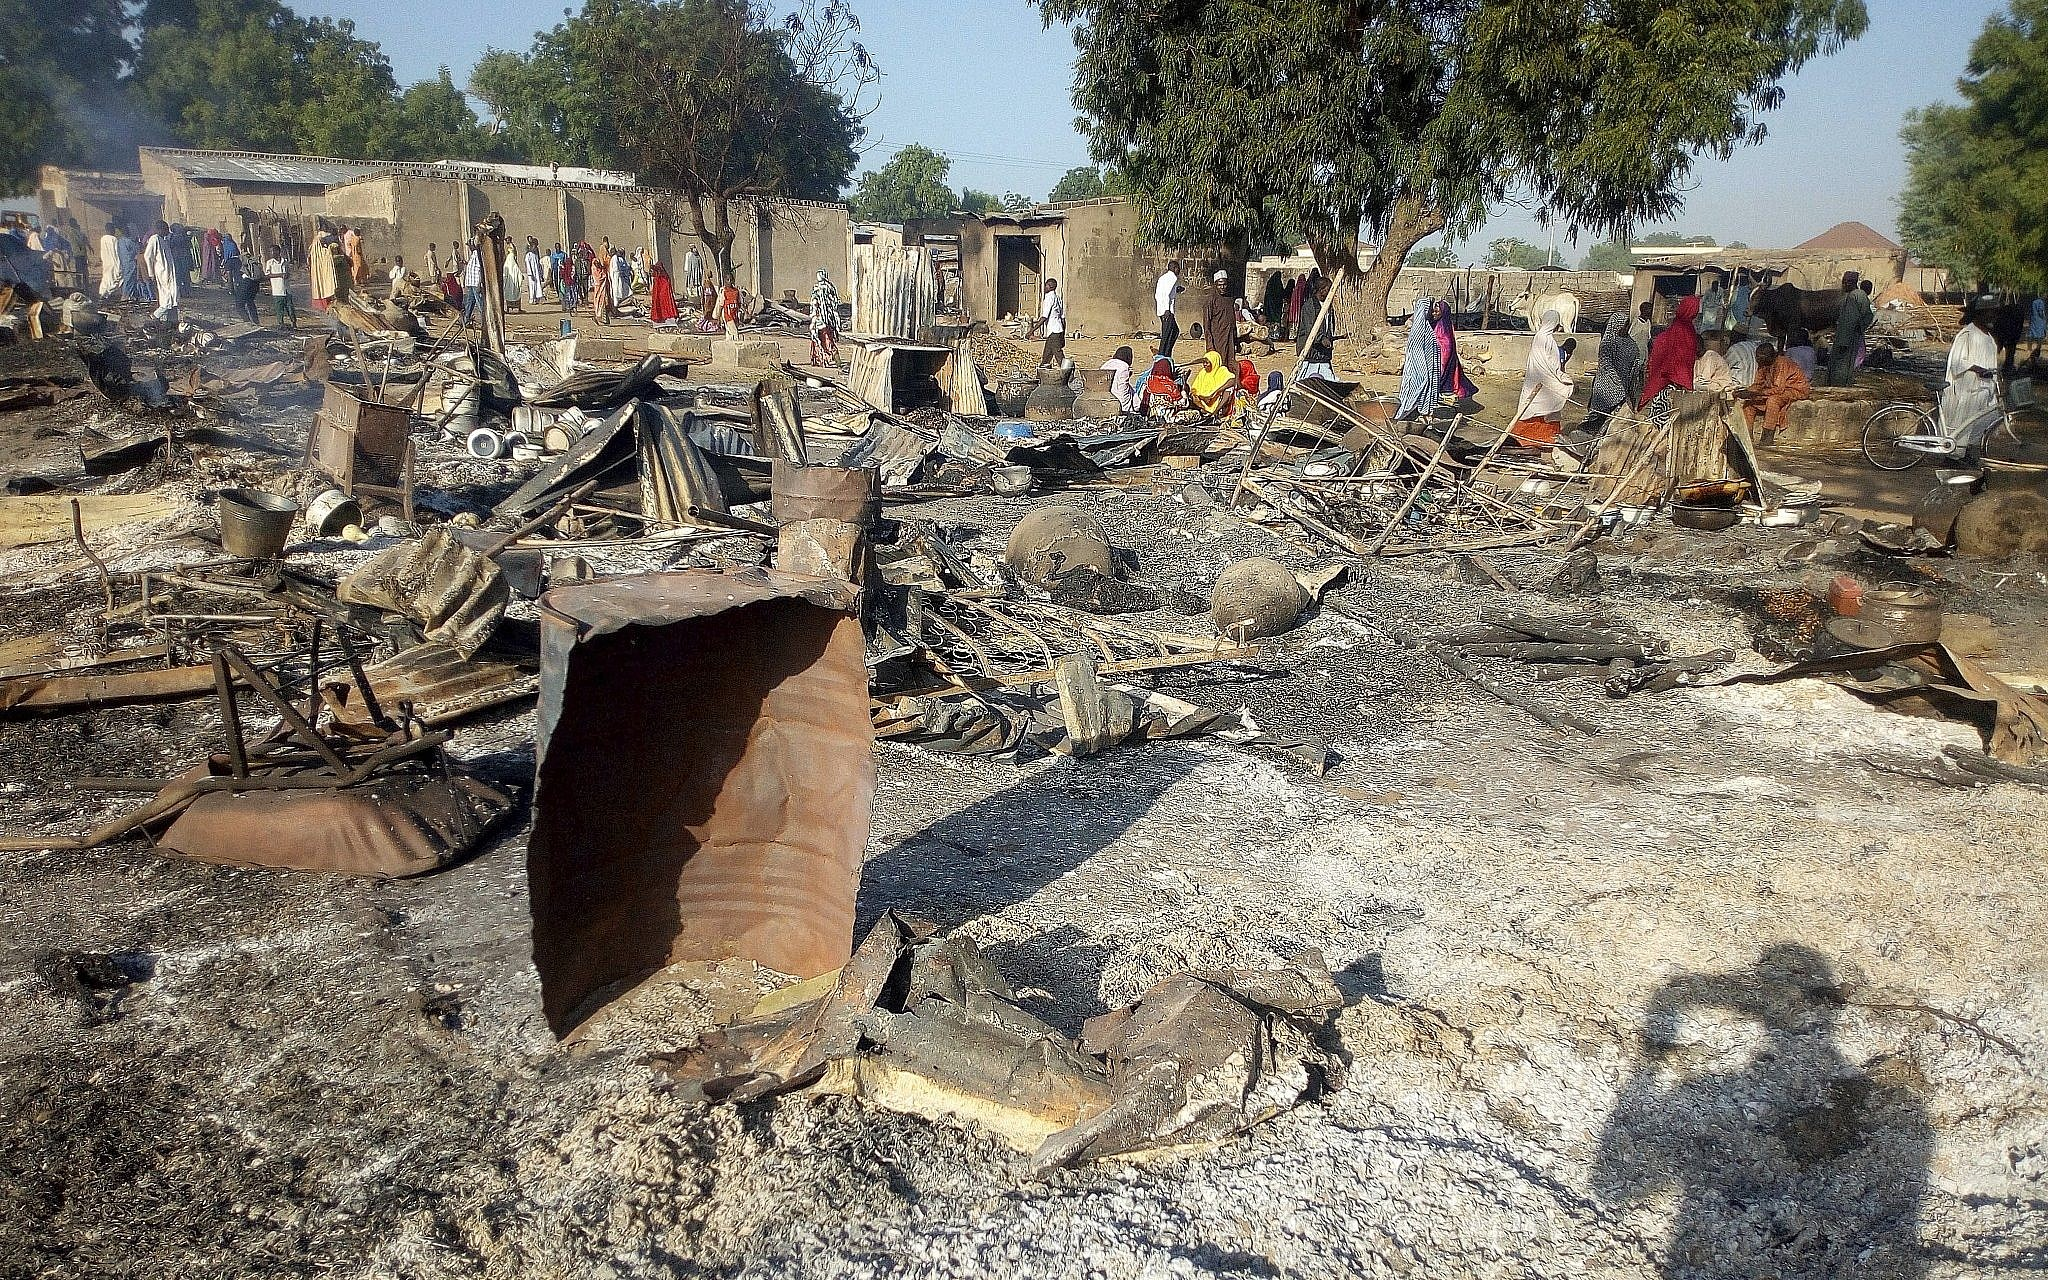 After 10 years of Boko Haram violence, Nigerians crave peace | The ...